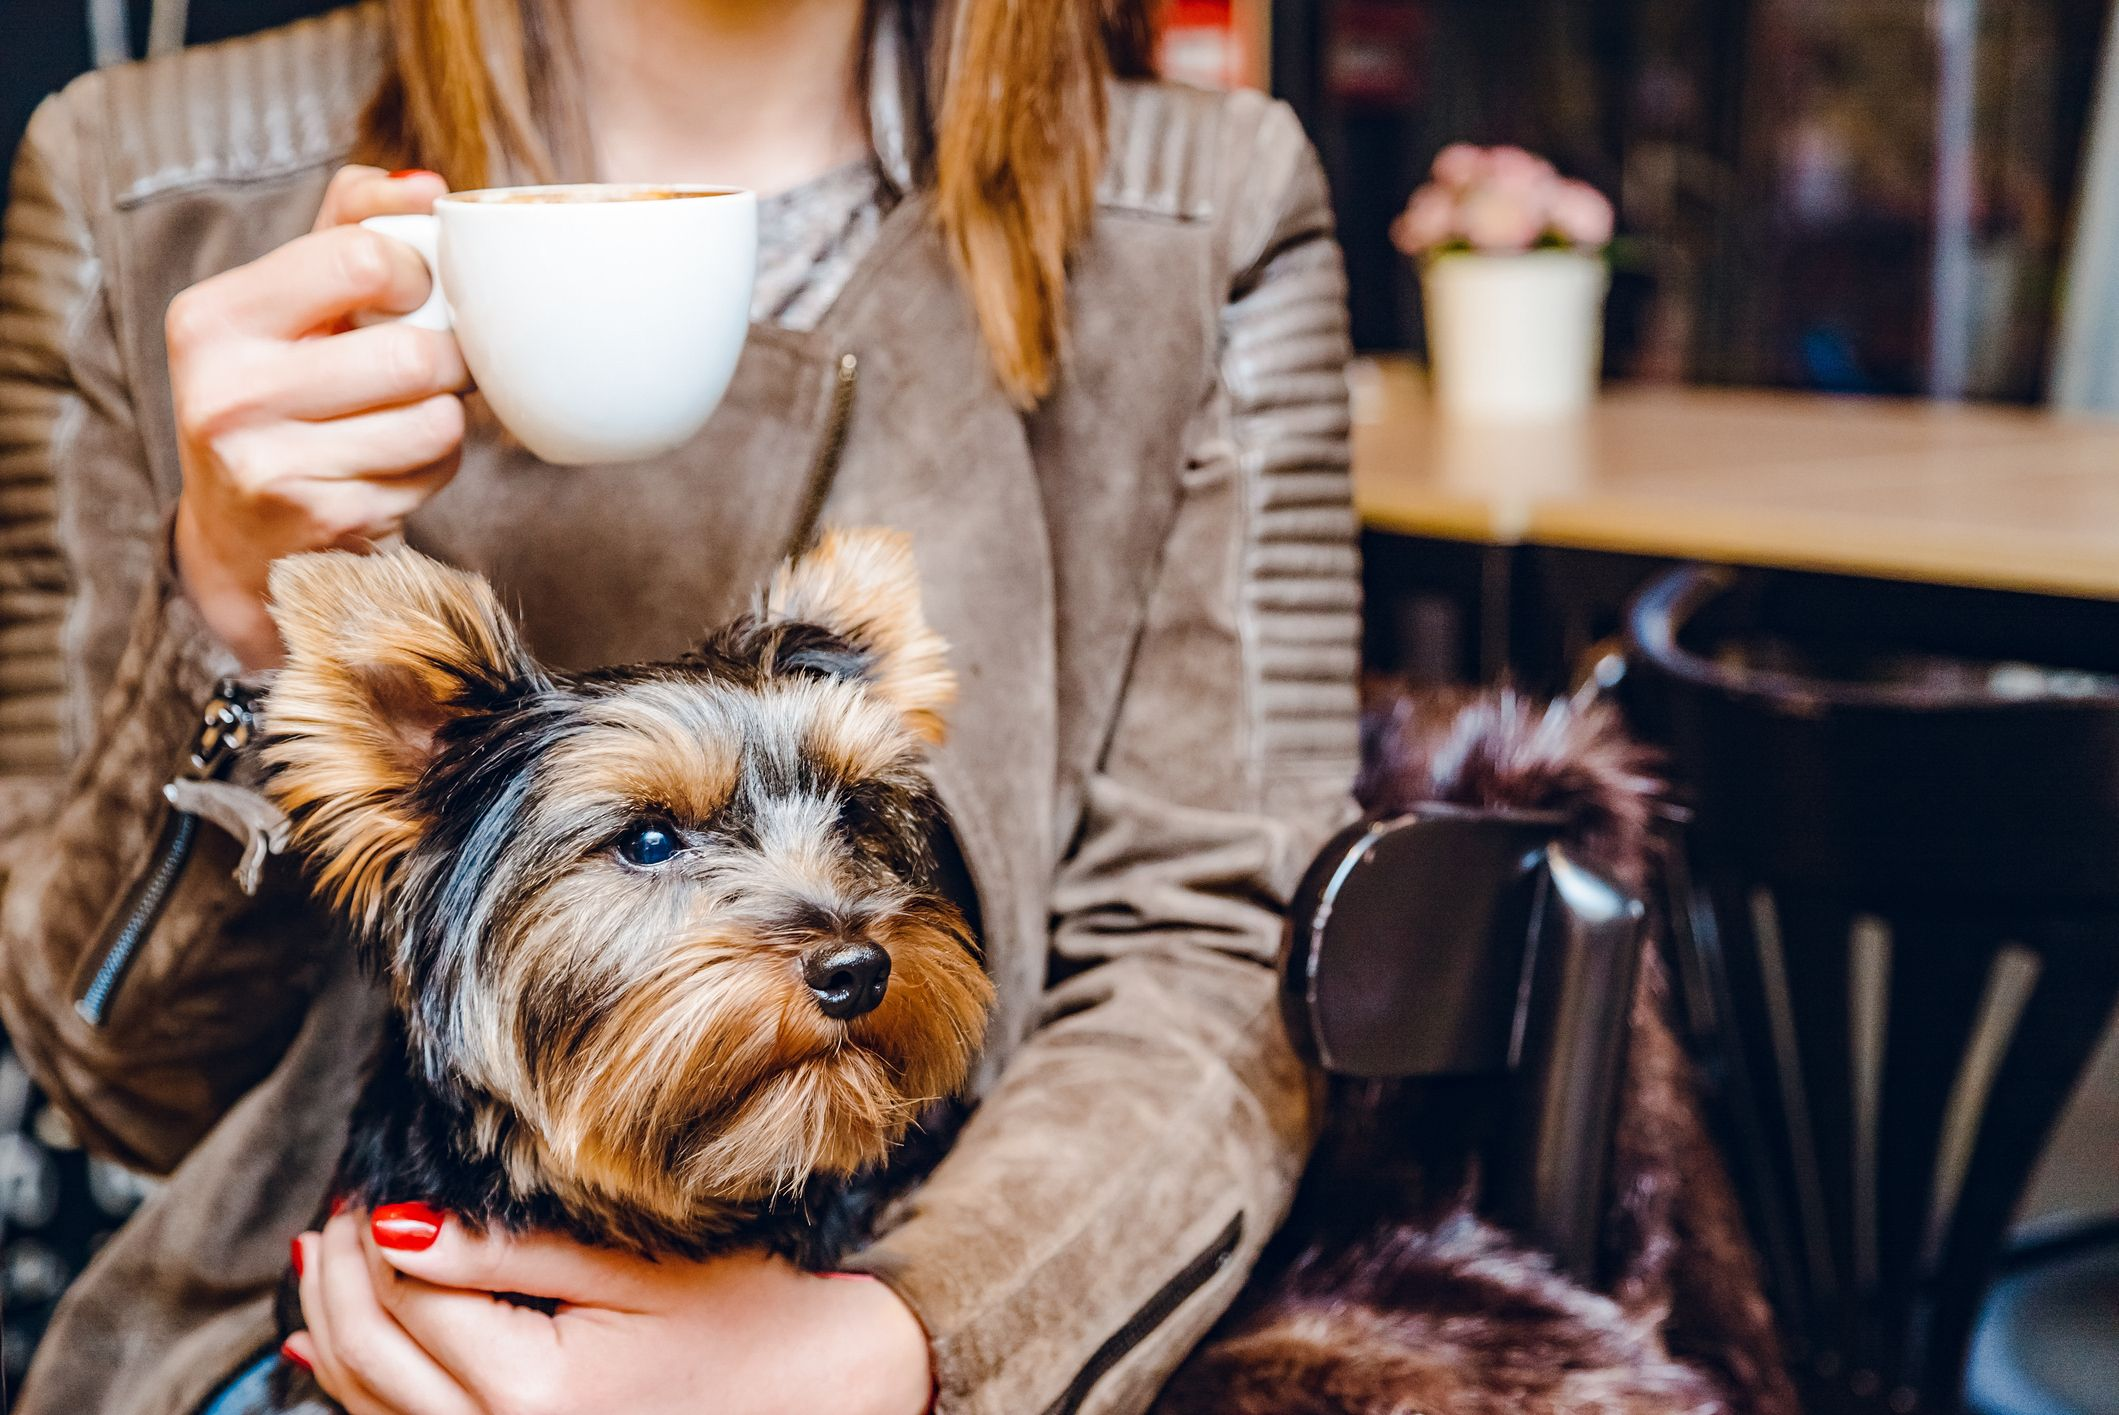 a person holding a small yorkie-type dog on their lap, with a cup of coffee in the other hand